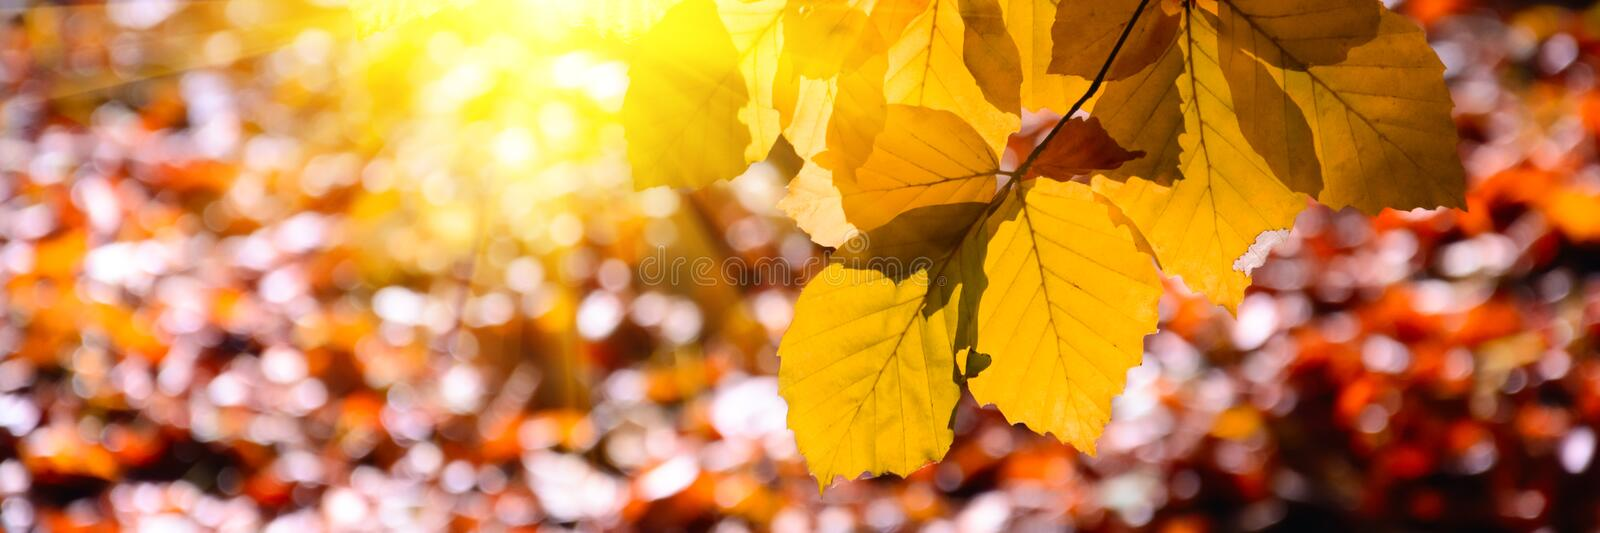 Banner 3:1. Sunlight from alder foliage in sunny day. Autumn background. Soft focus stock image